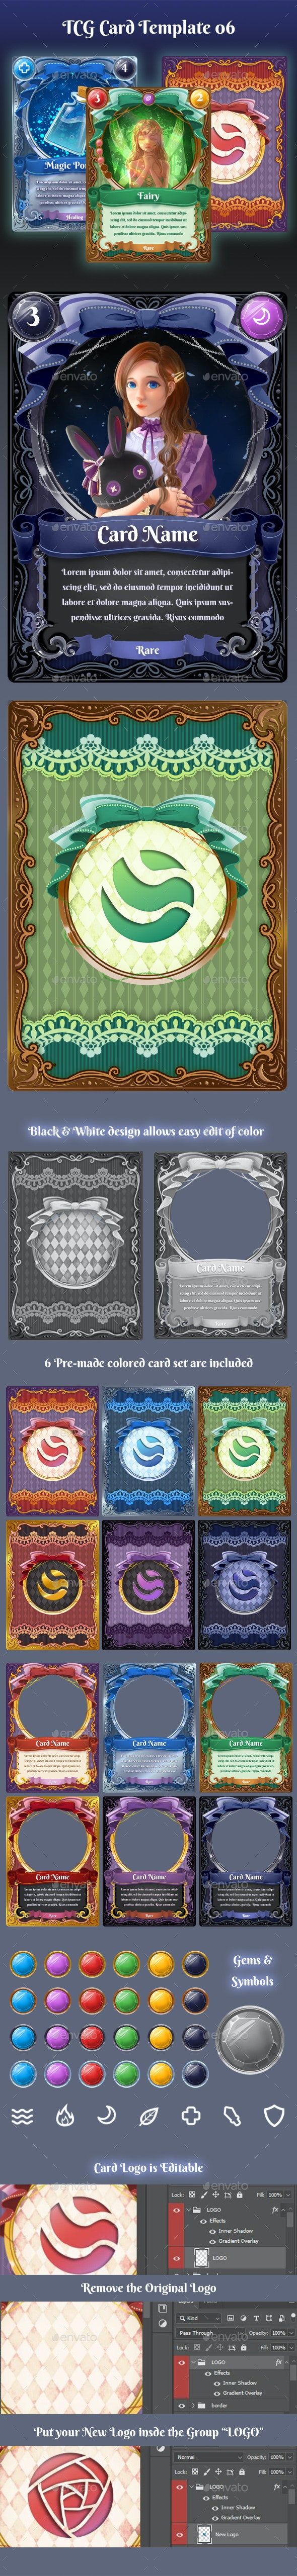 TCG Card Template 06 - Miscellaneous Game Assets